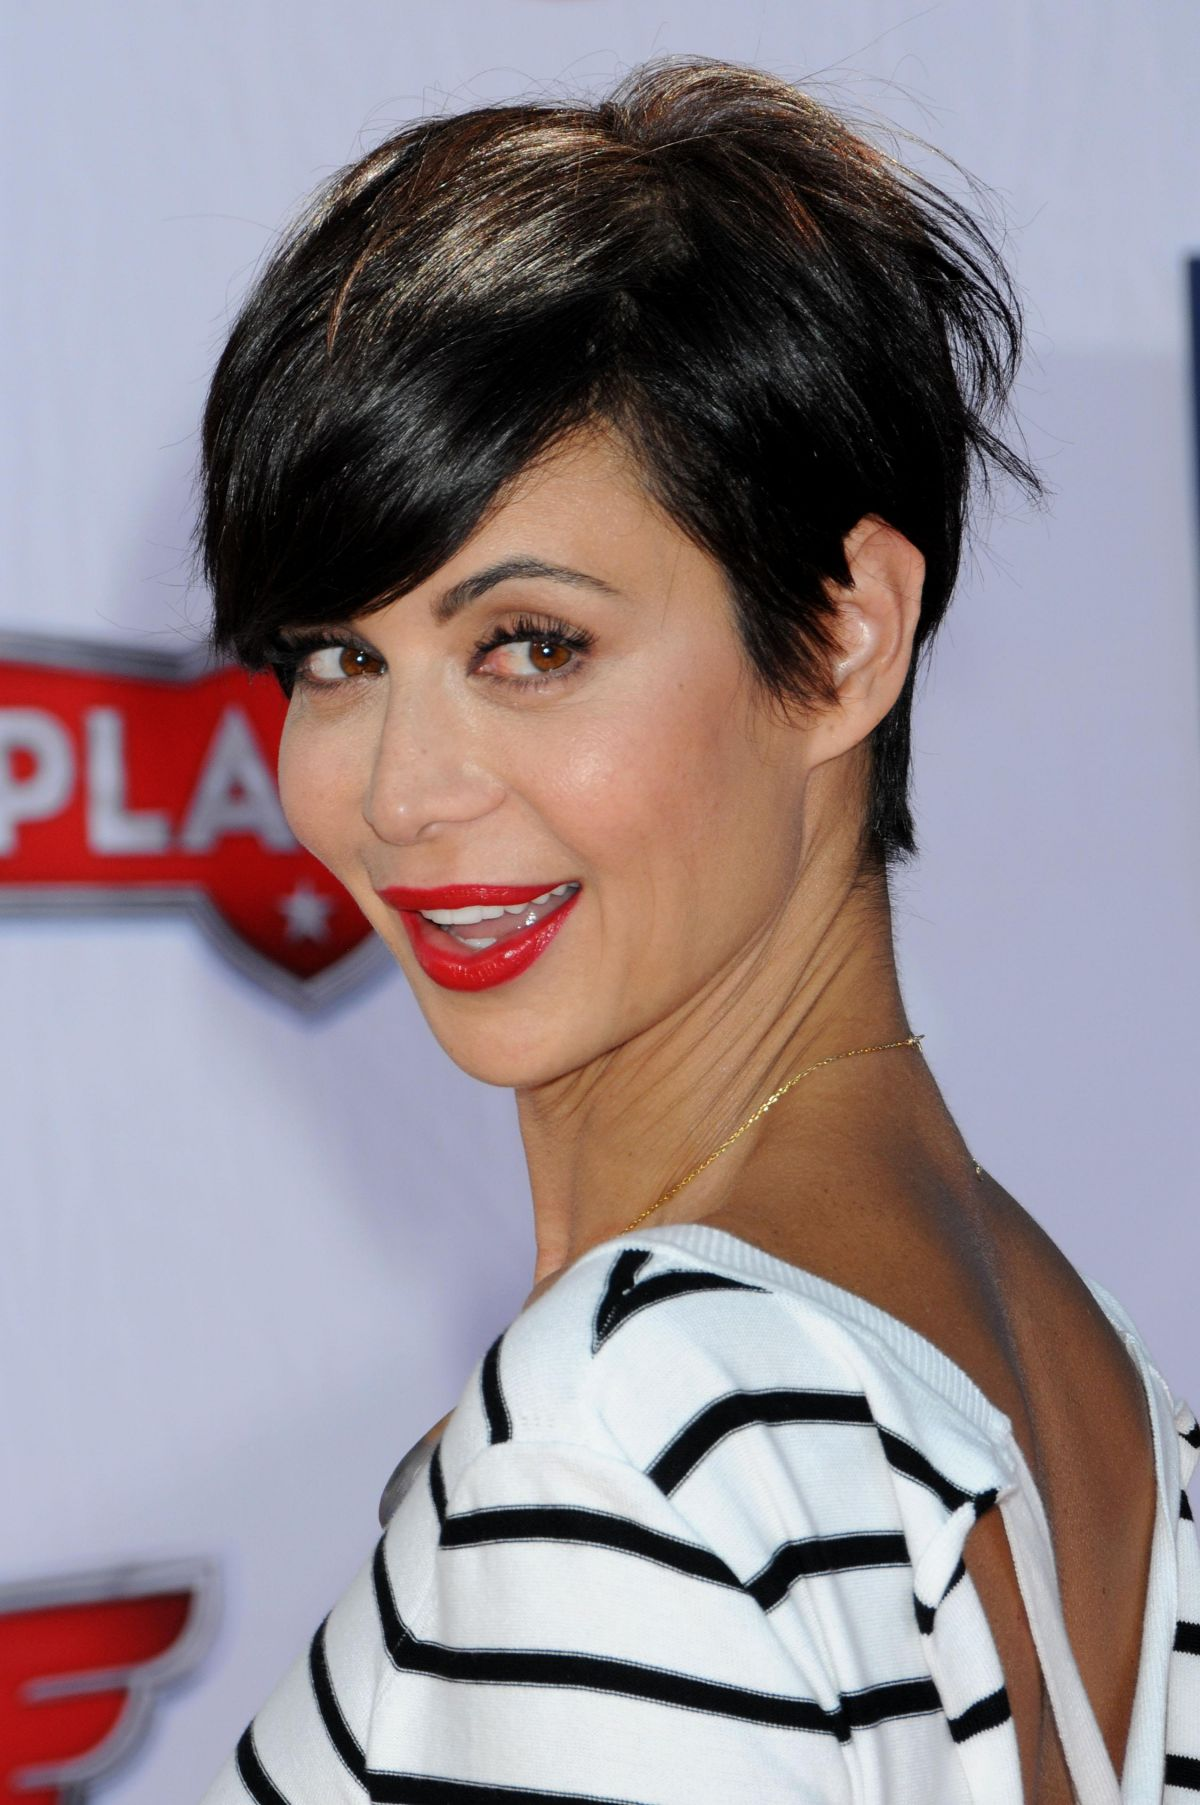 Catherine Bell At Disneys Planes Premiere In Hoolywood